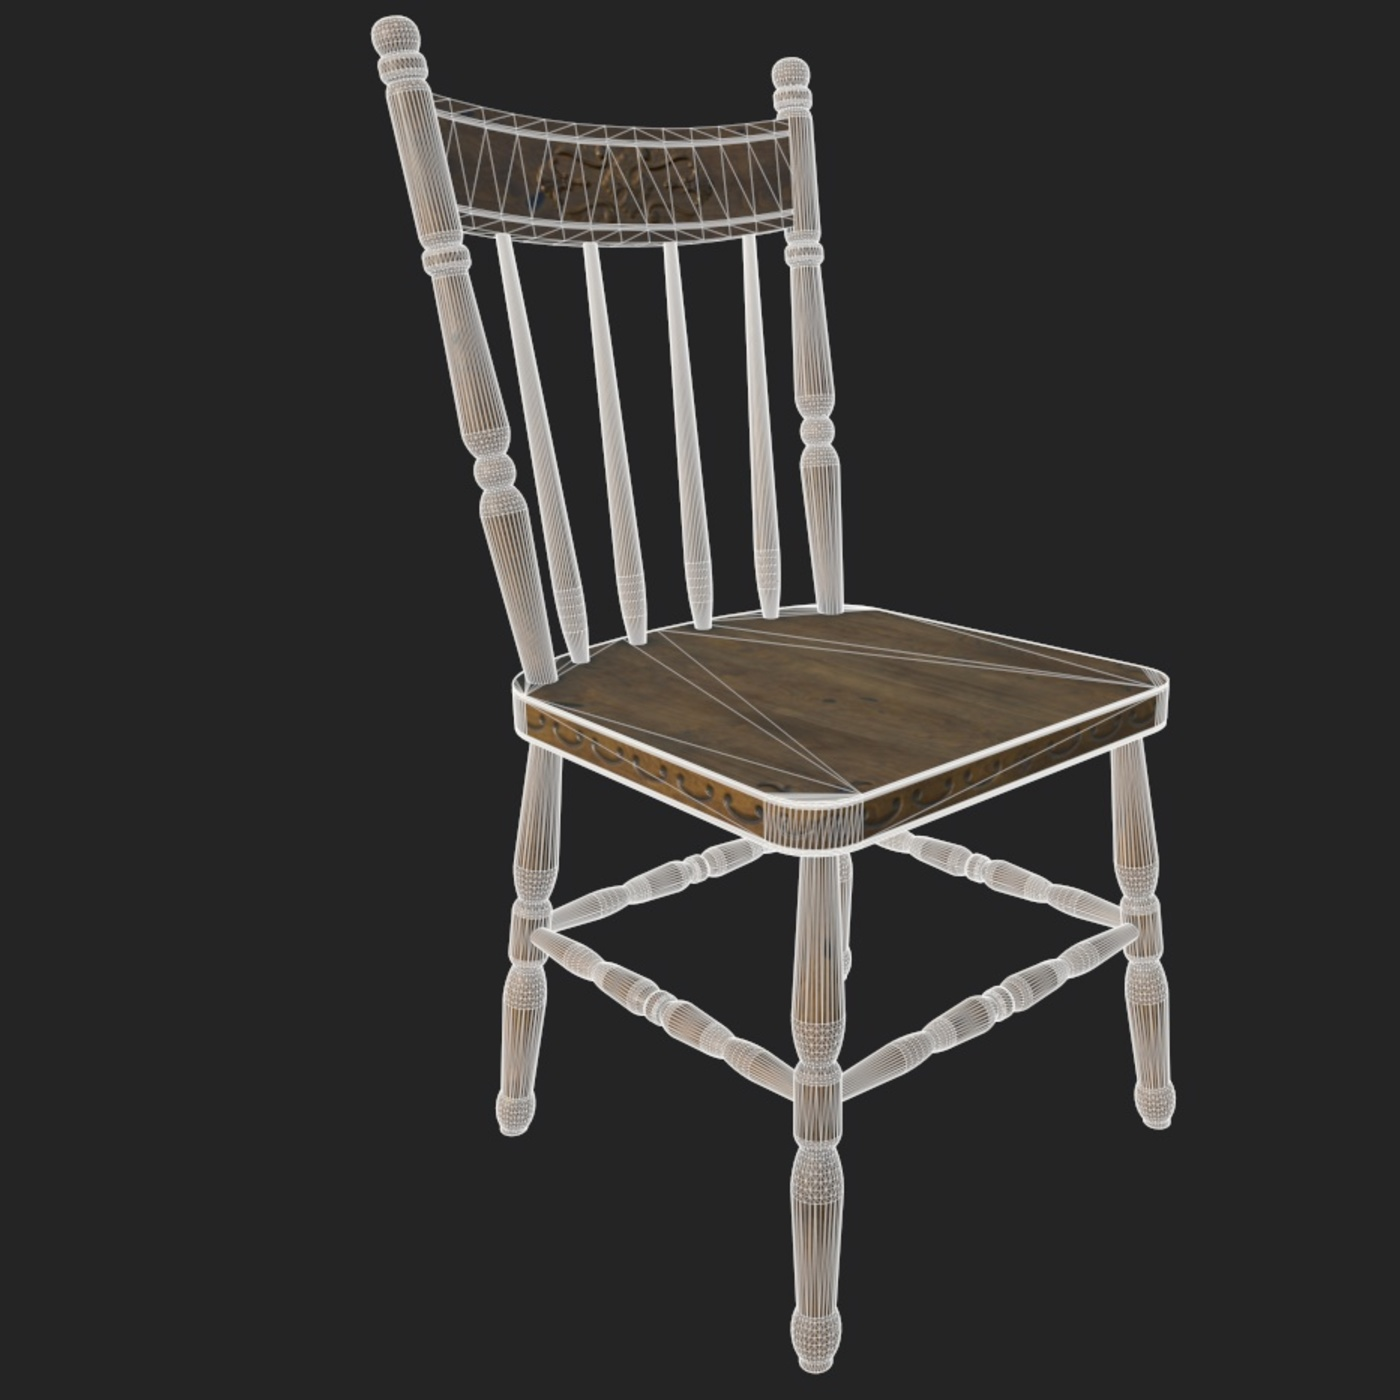 Antique Wooden Chair